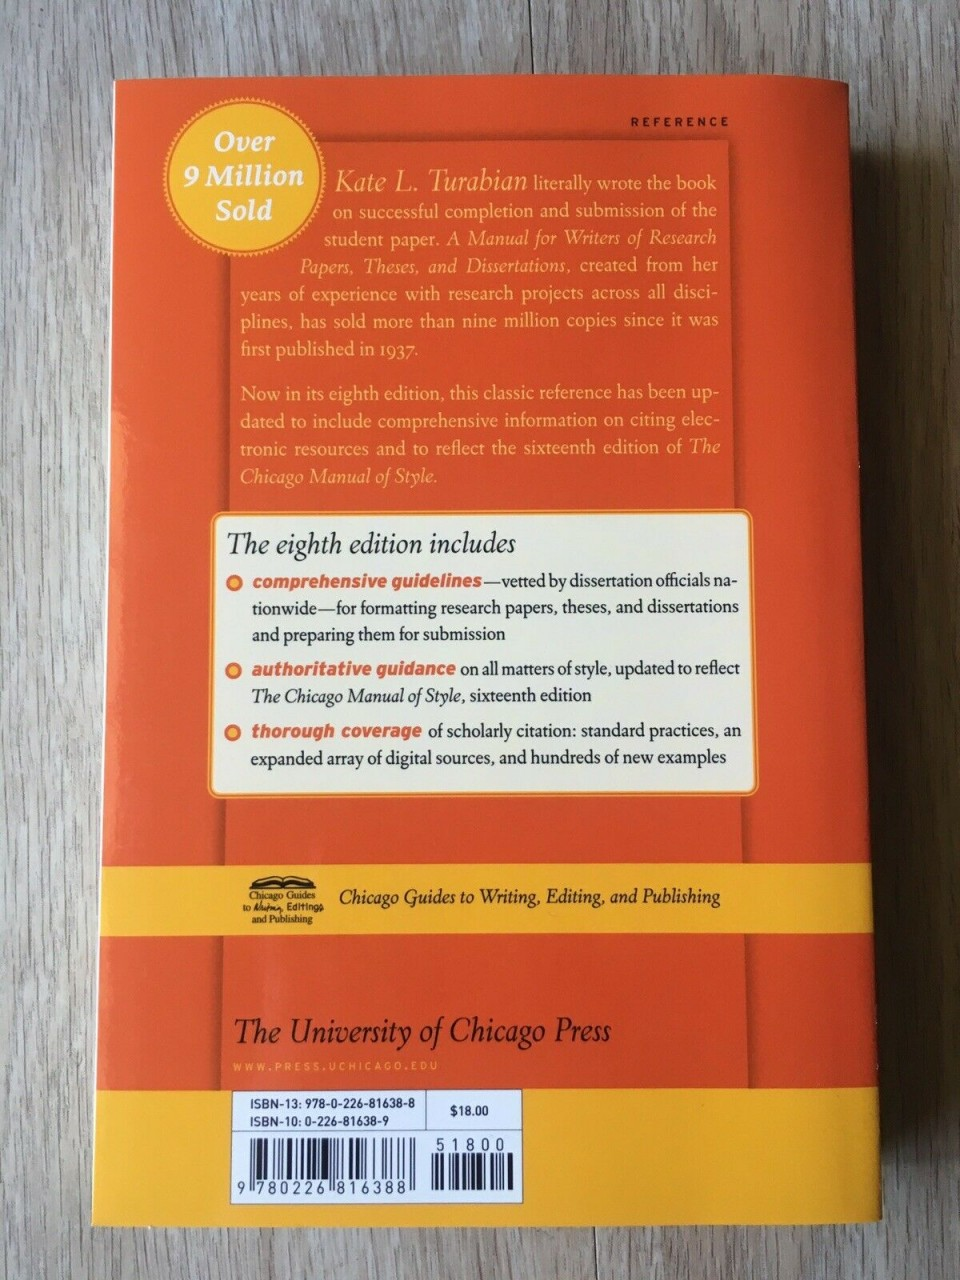 011 Research Paper Manual For Writers Of Papers Theses And Dissertations S Sensational A 8th Edition Pdf Eighth 960